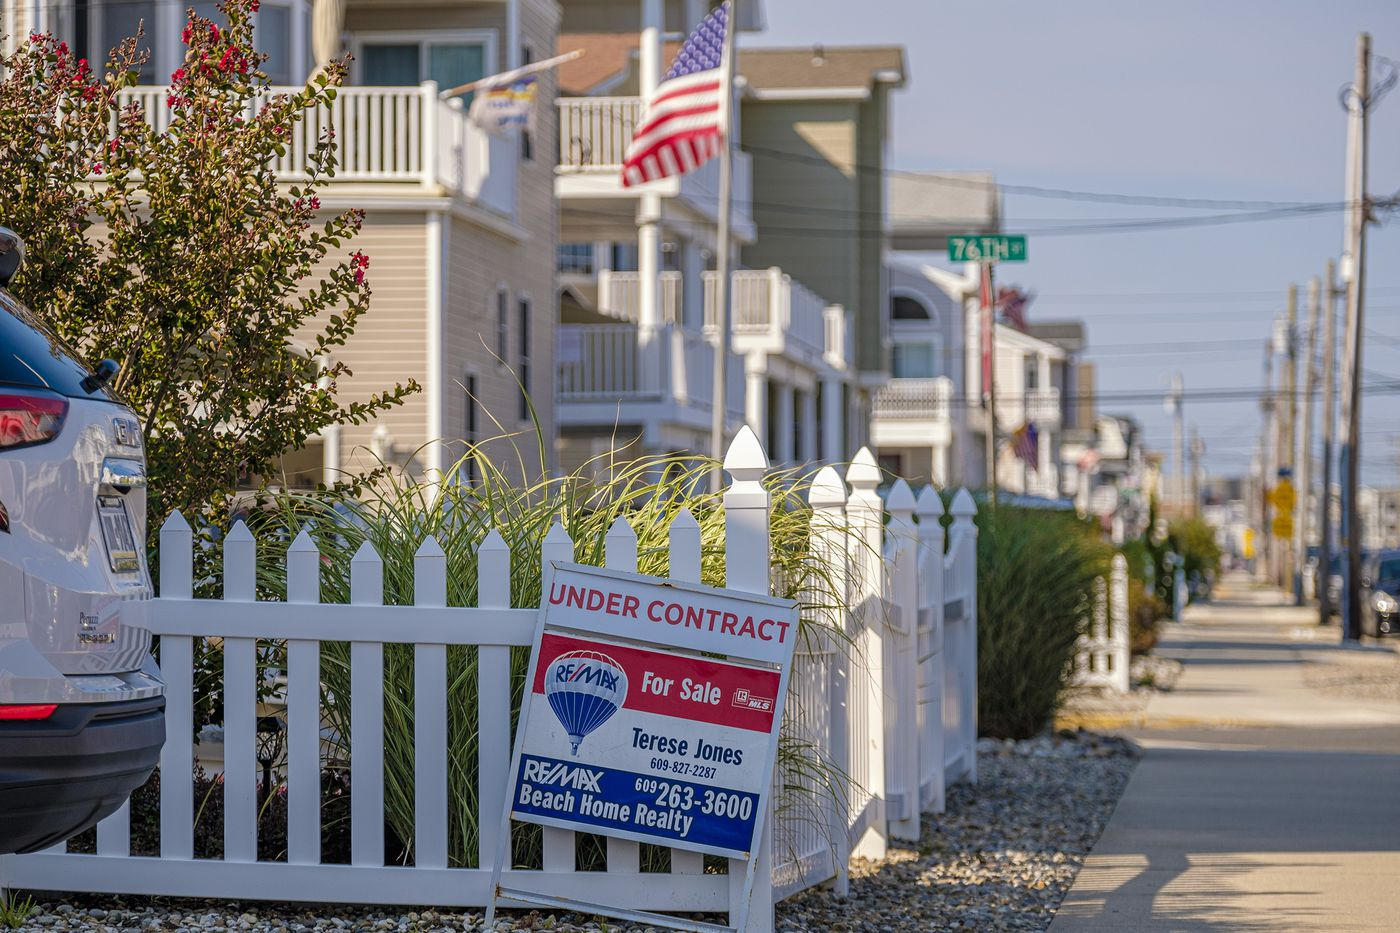 A for sale sign along Landis Avenue in Sea Isle City, N.J.